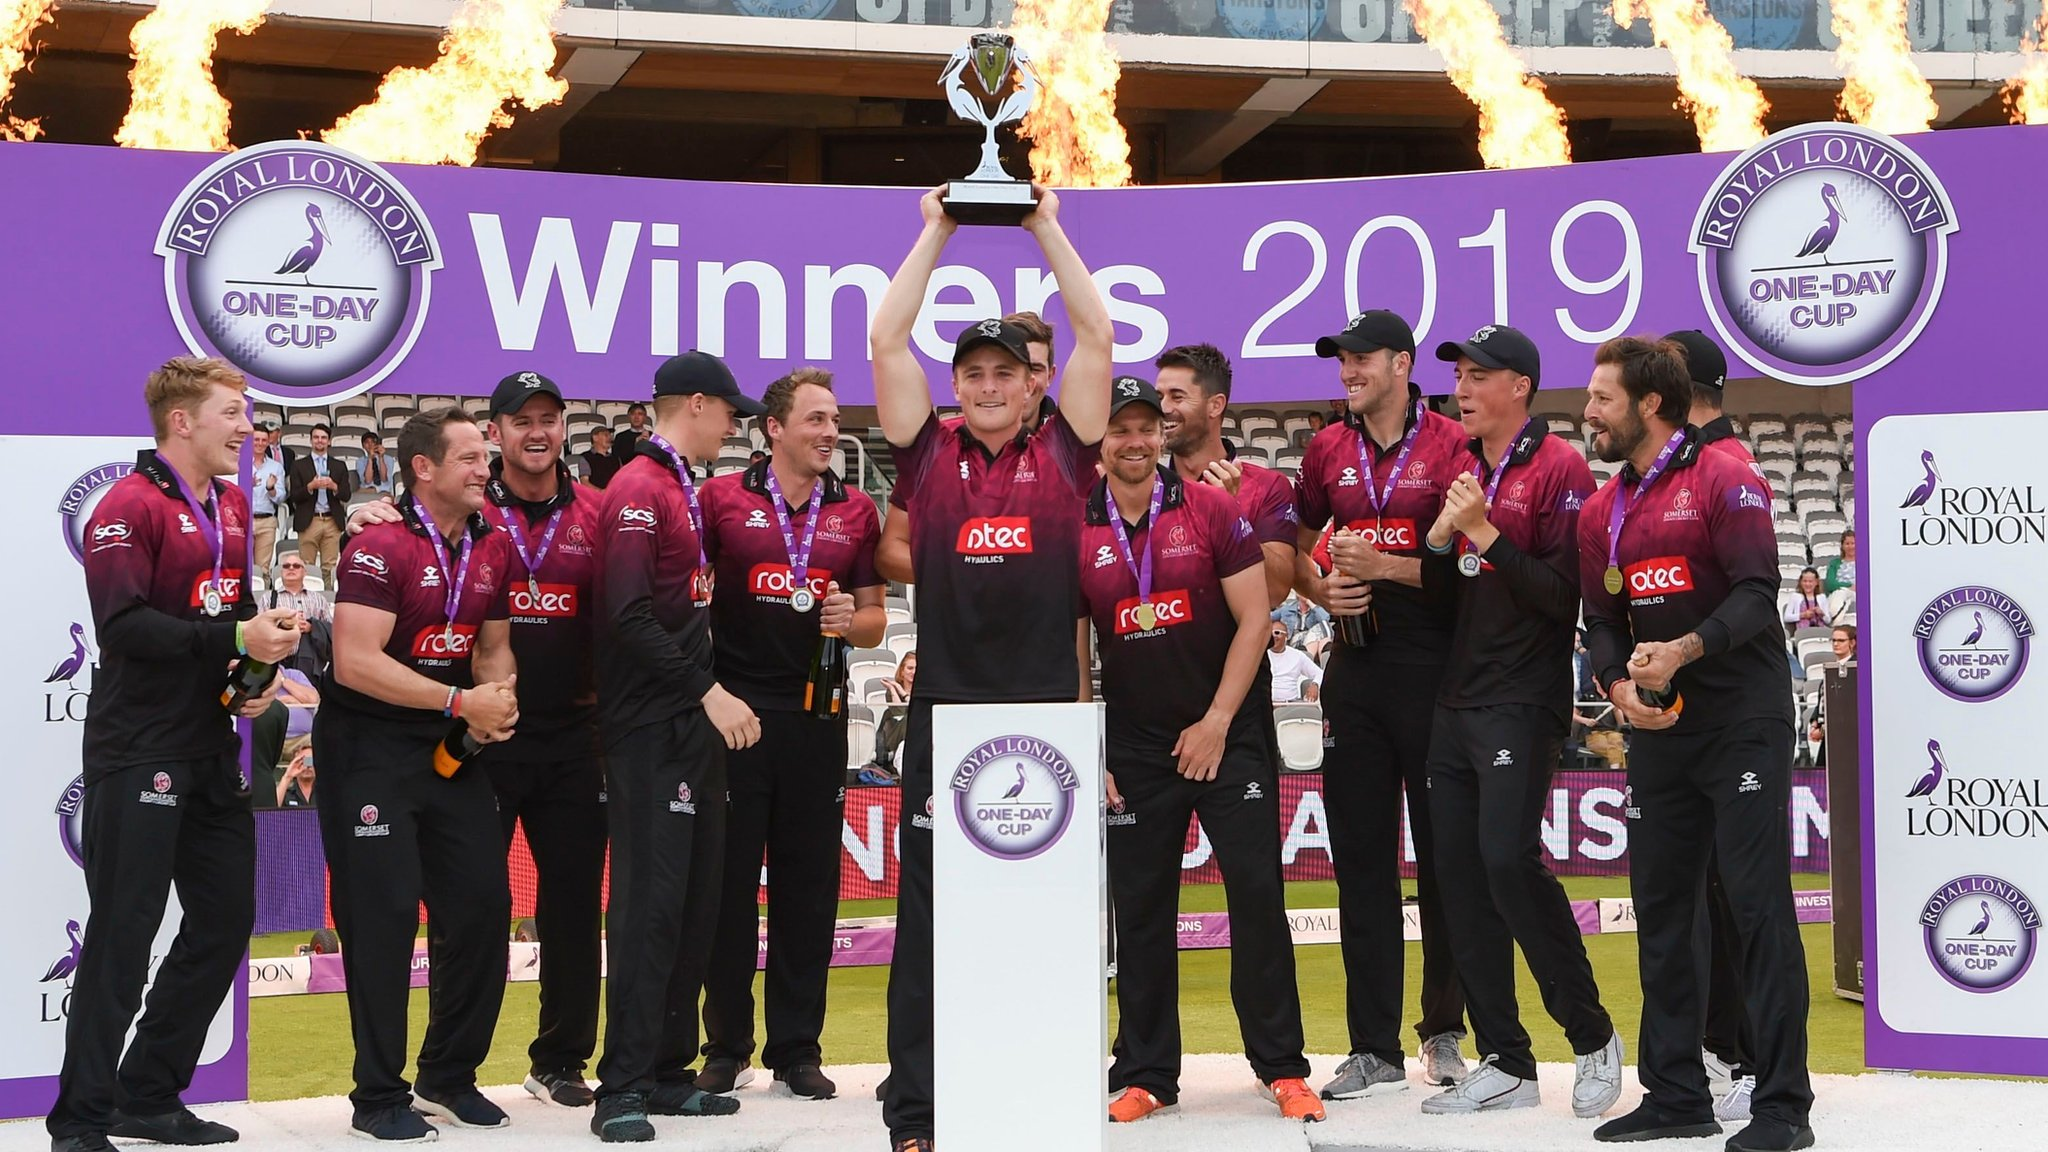 Somerset beat Hampshire to win last Lord's One-Day Cup final